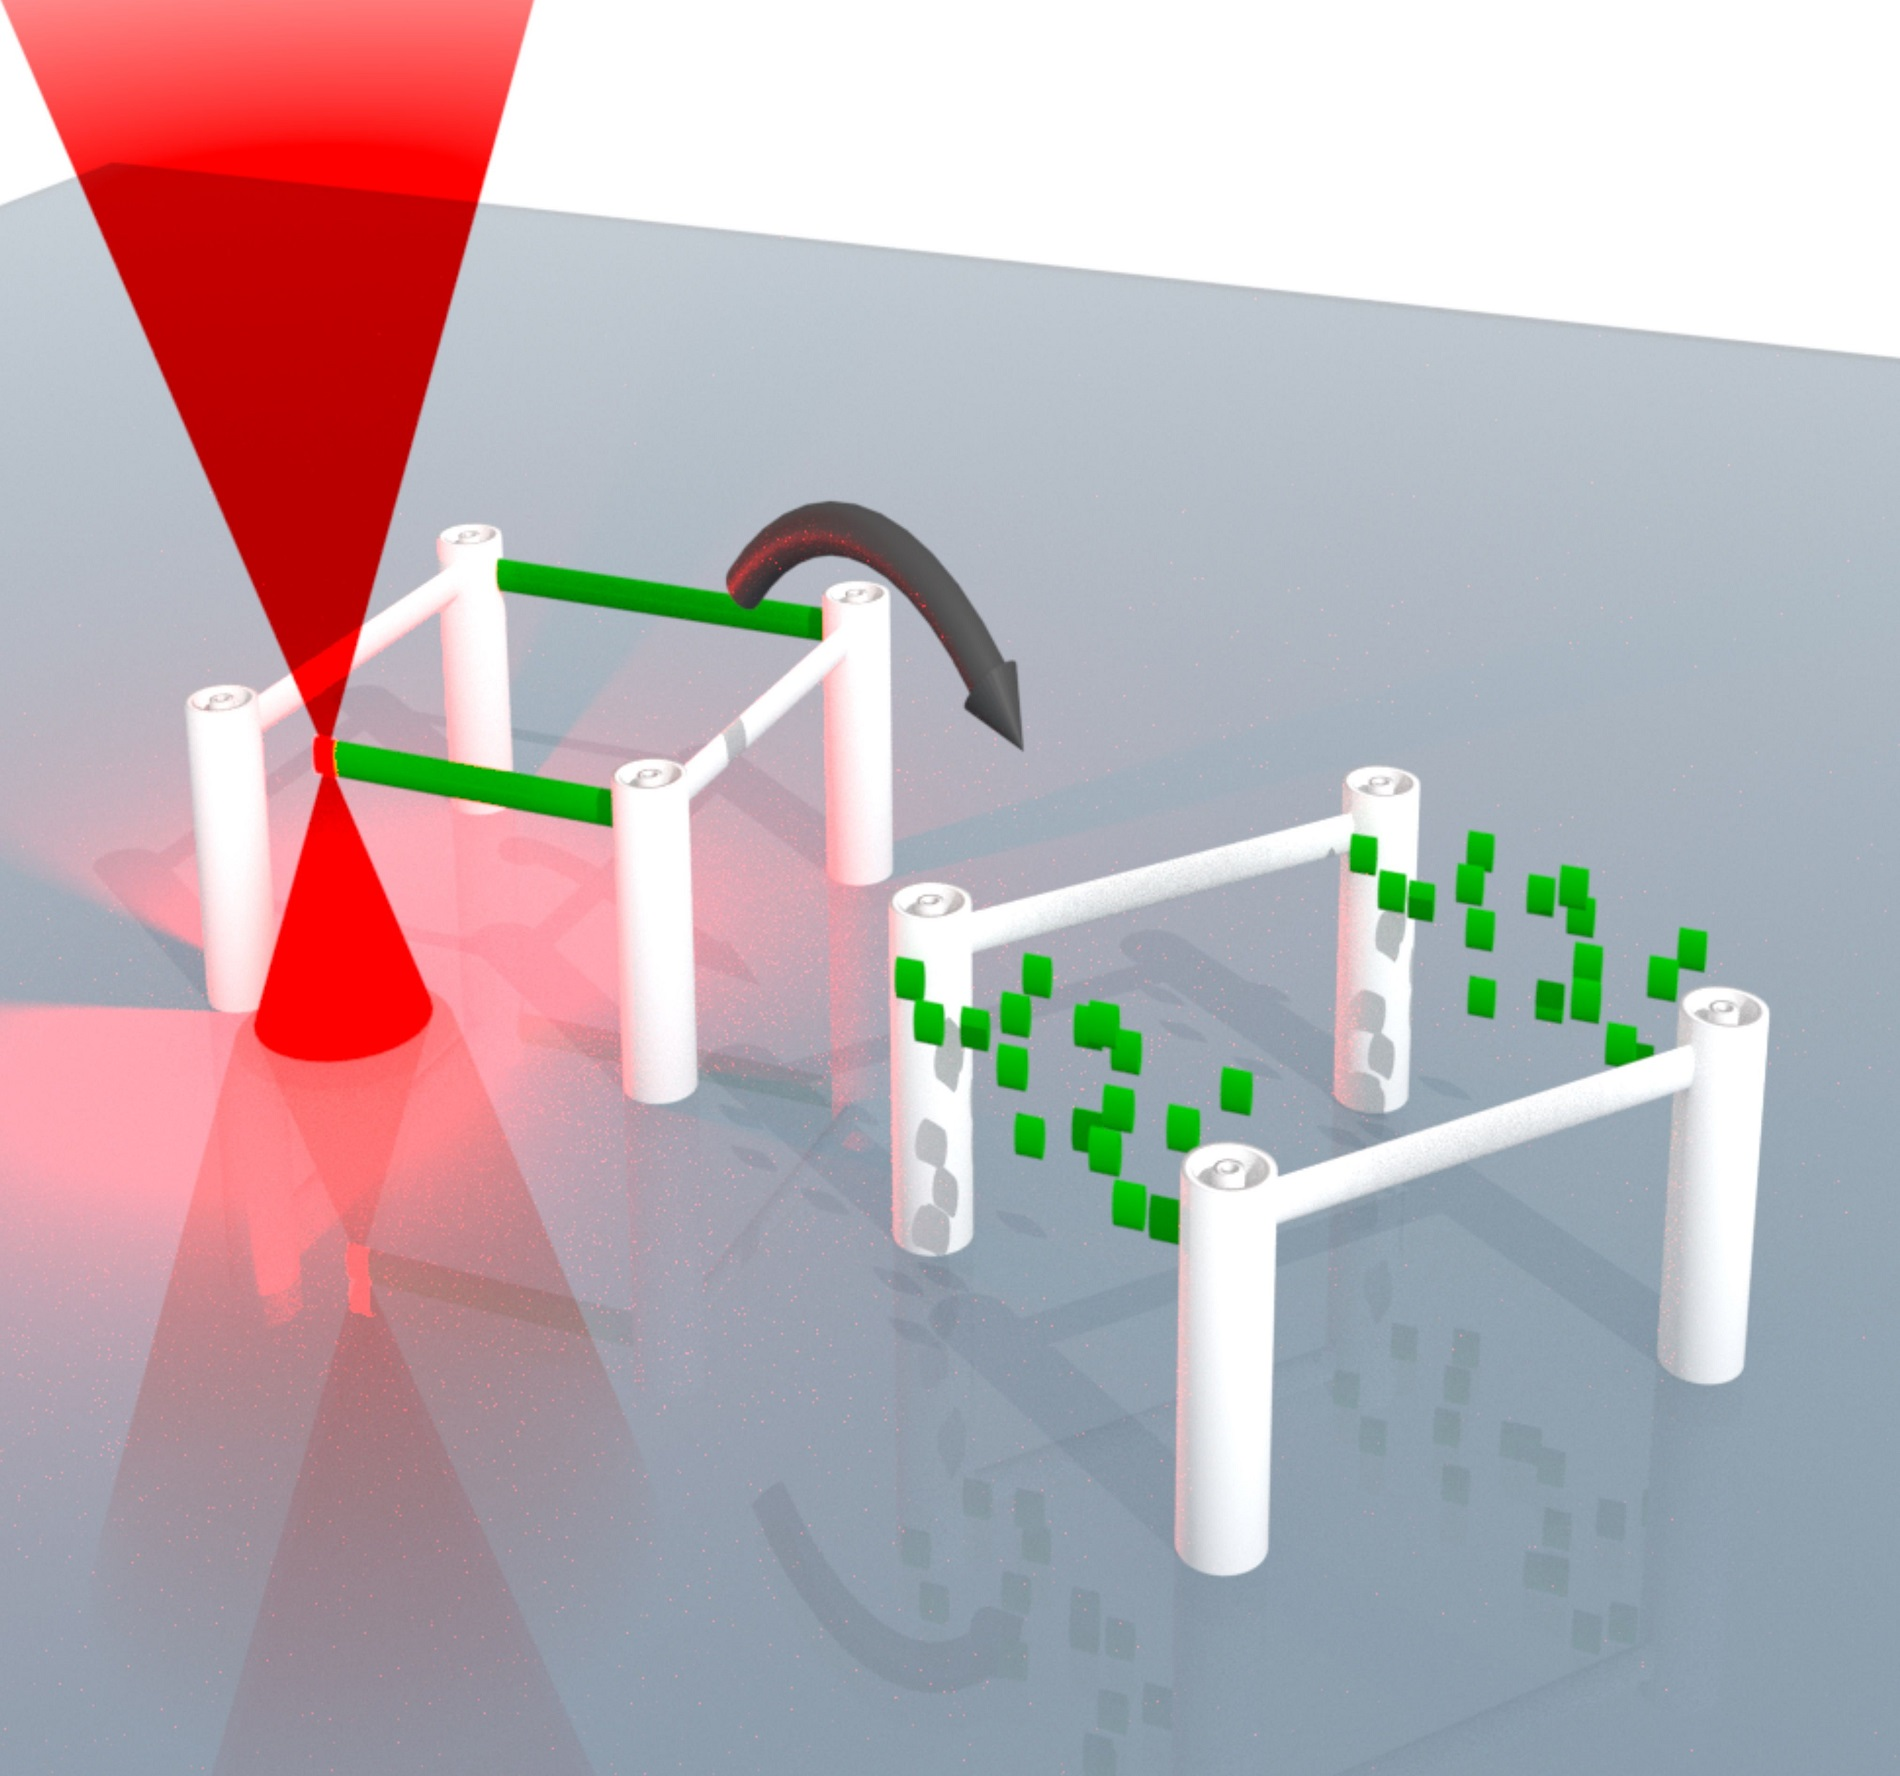 3-dimensional microstructures can be written using a laser, erased, and rewritten